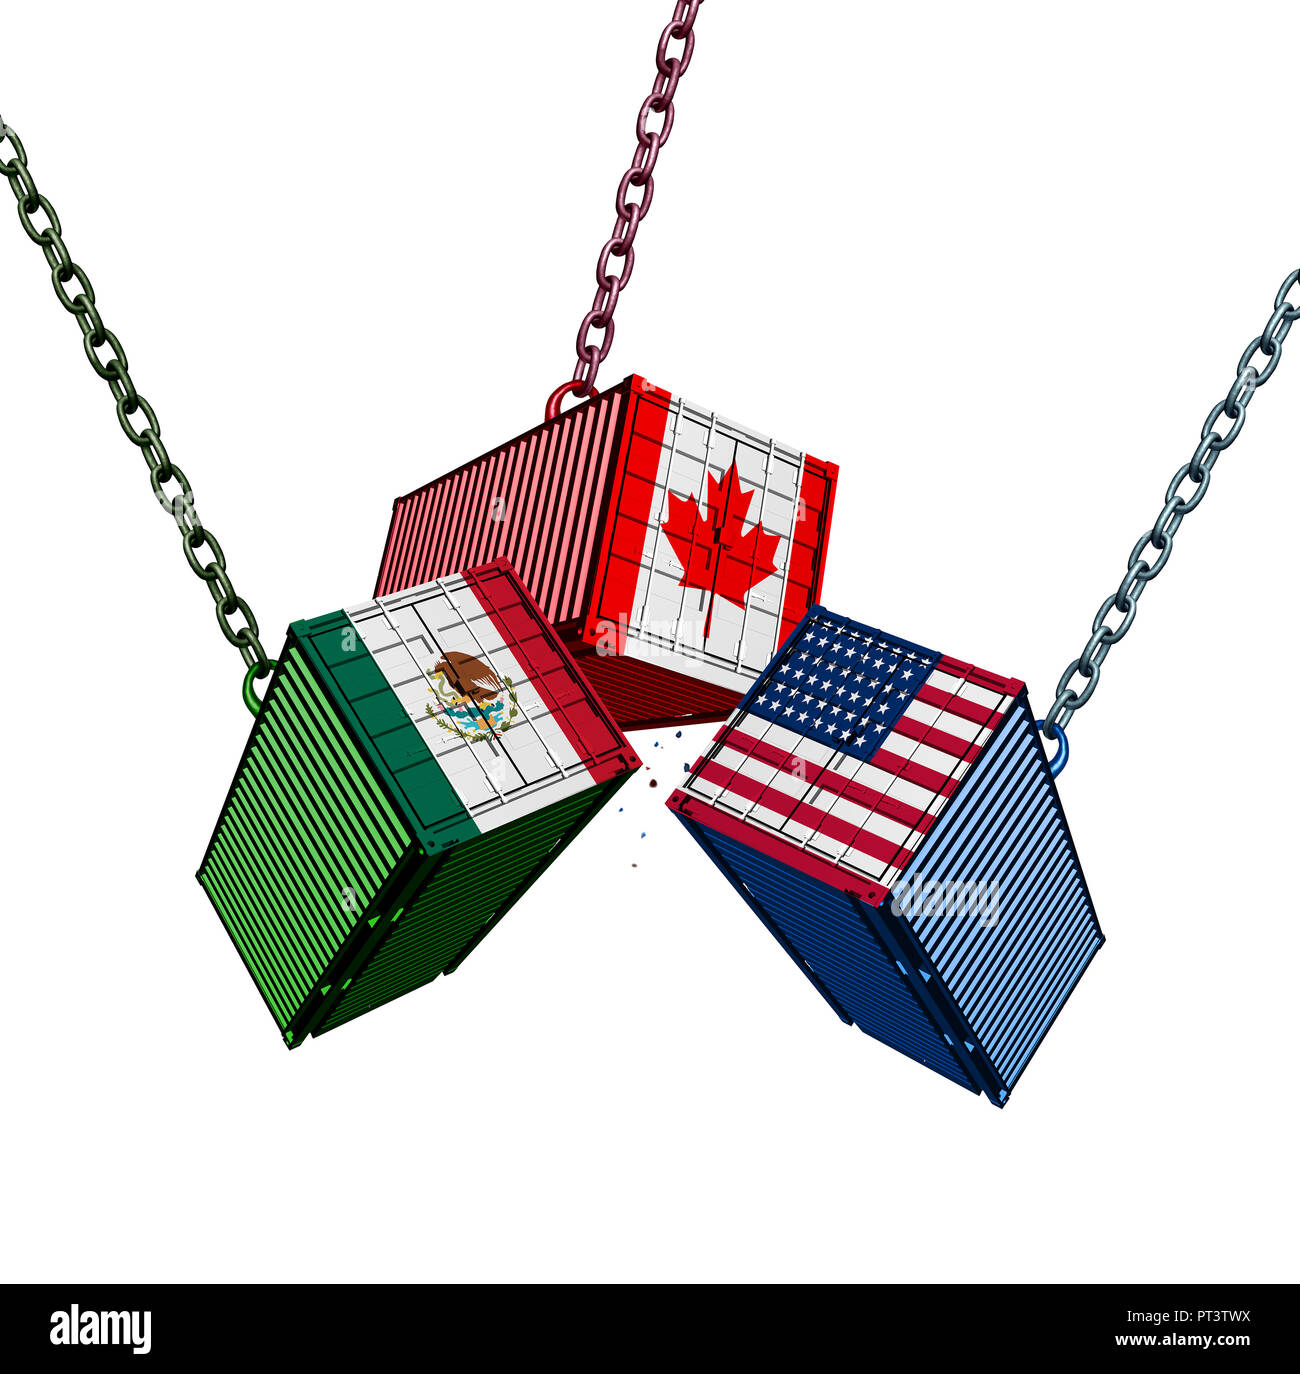 United States Mexico Canada trade agreement as the USMCA with cargo shipping containers joining together as an economic import and export deal. Stock Photo